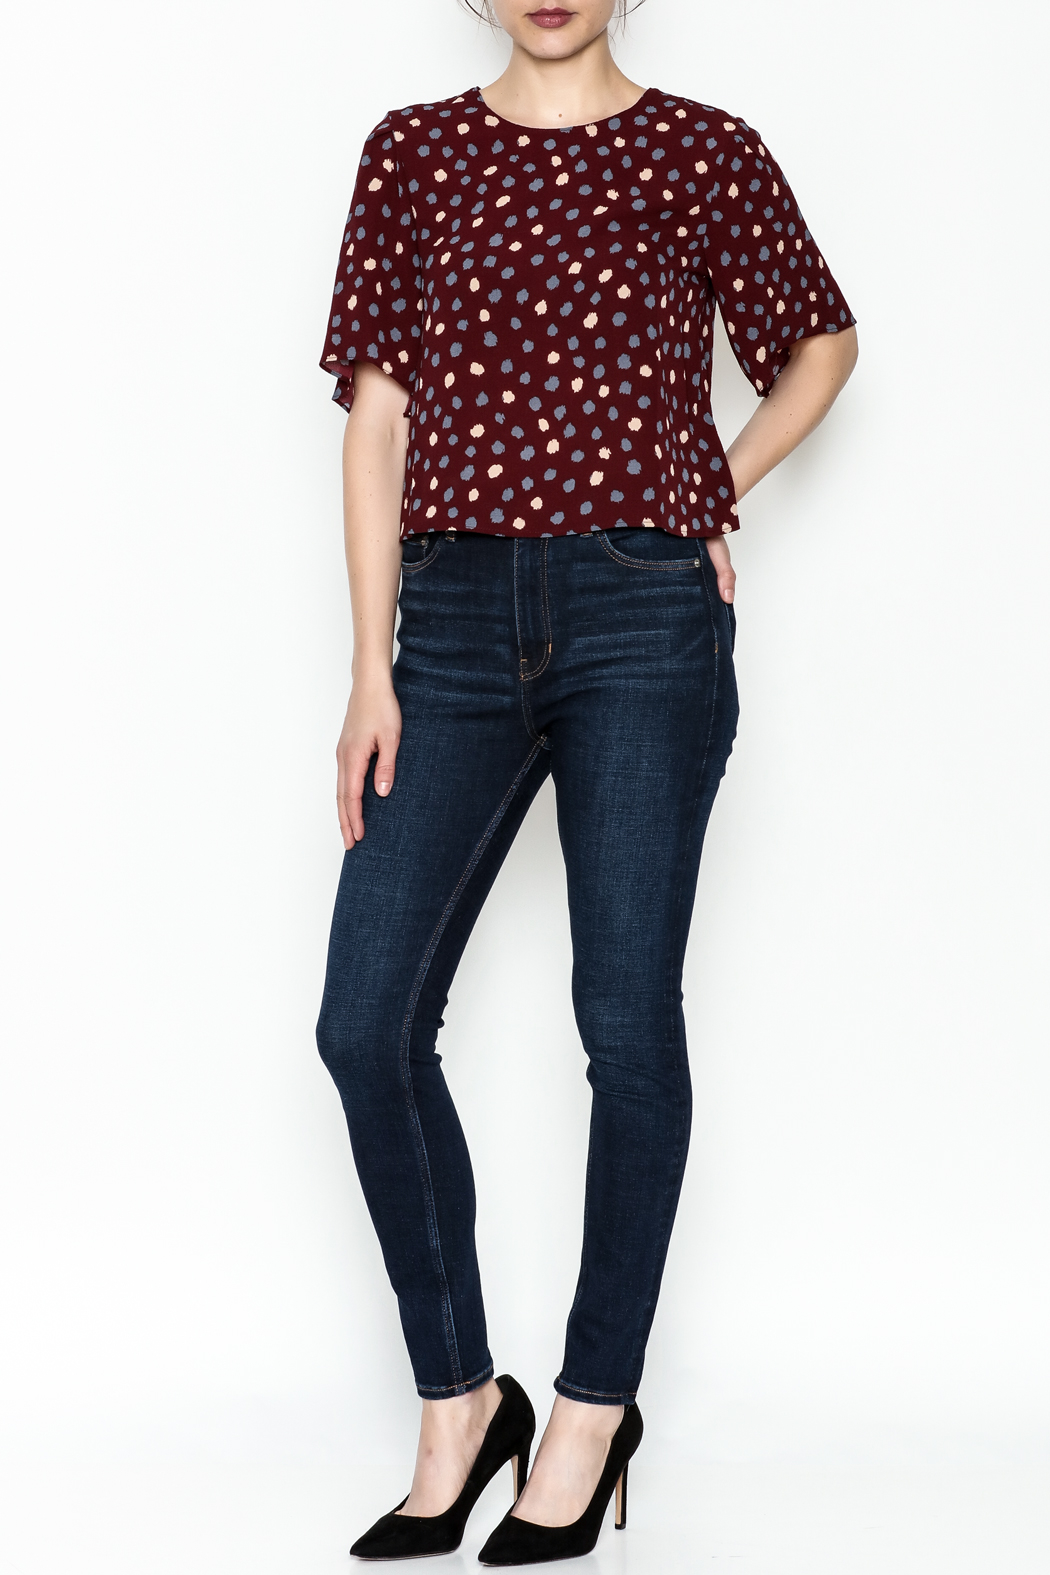 Alythea Polka Dot Top - Side Cropped Image